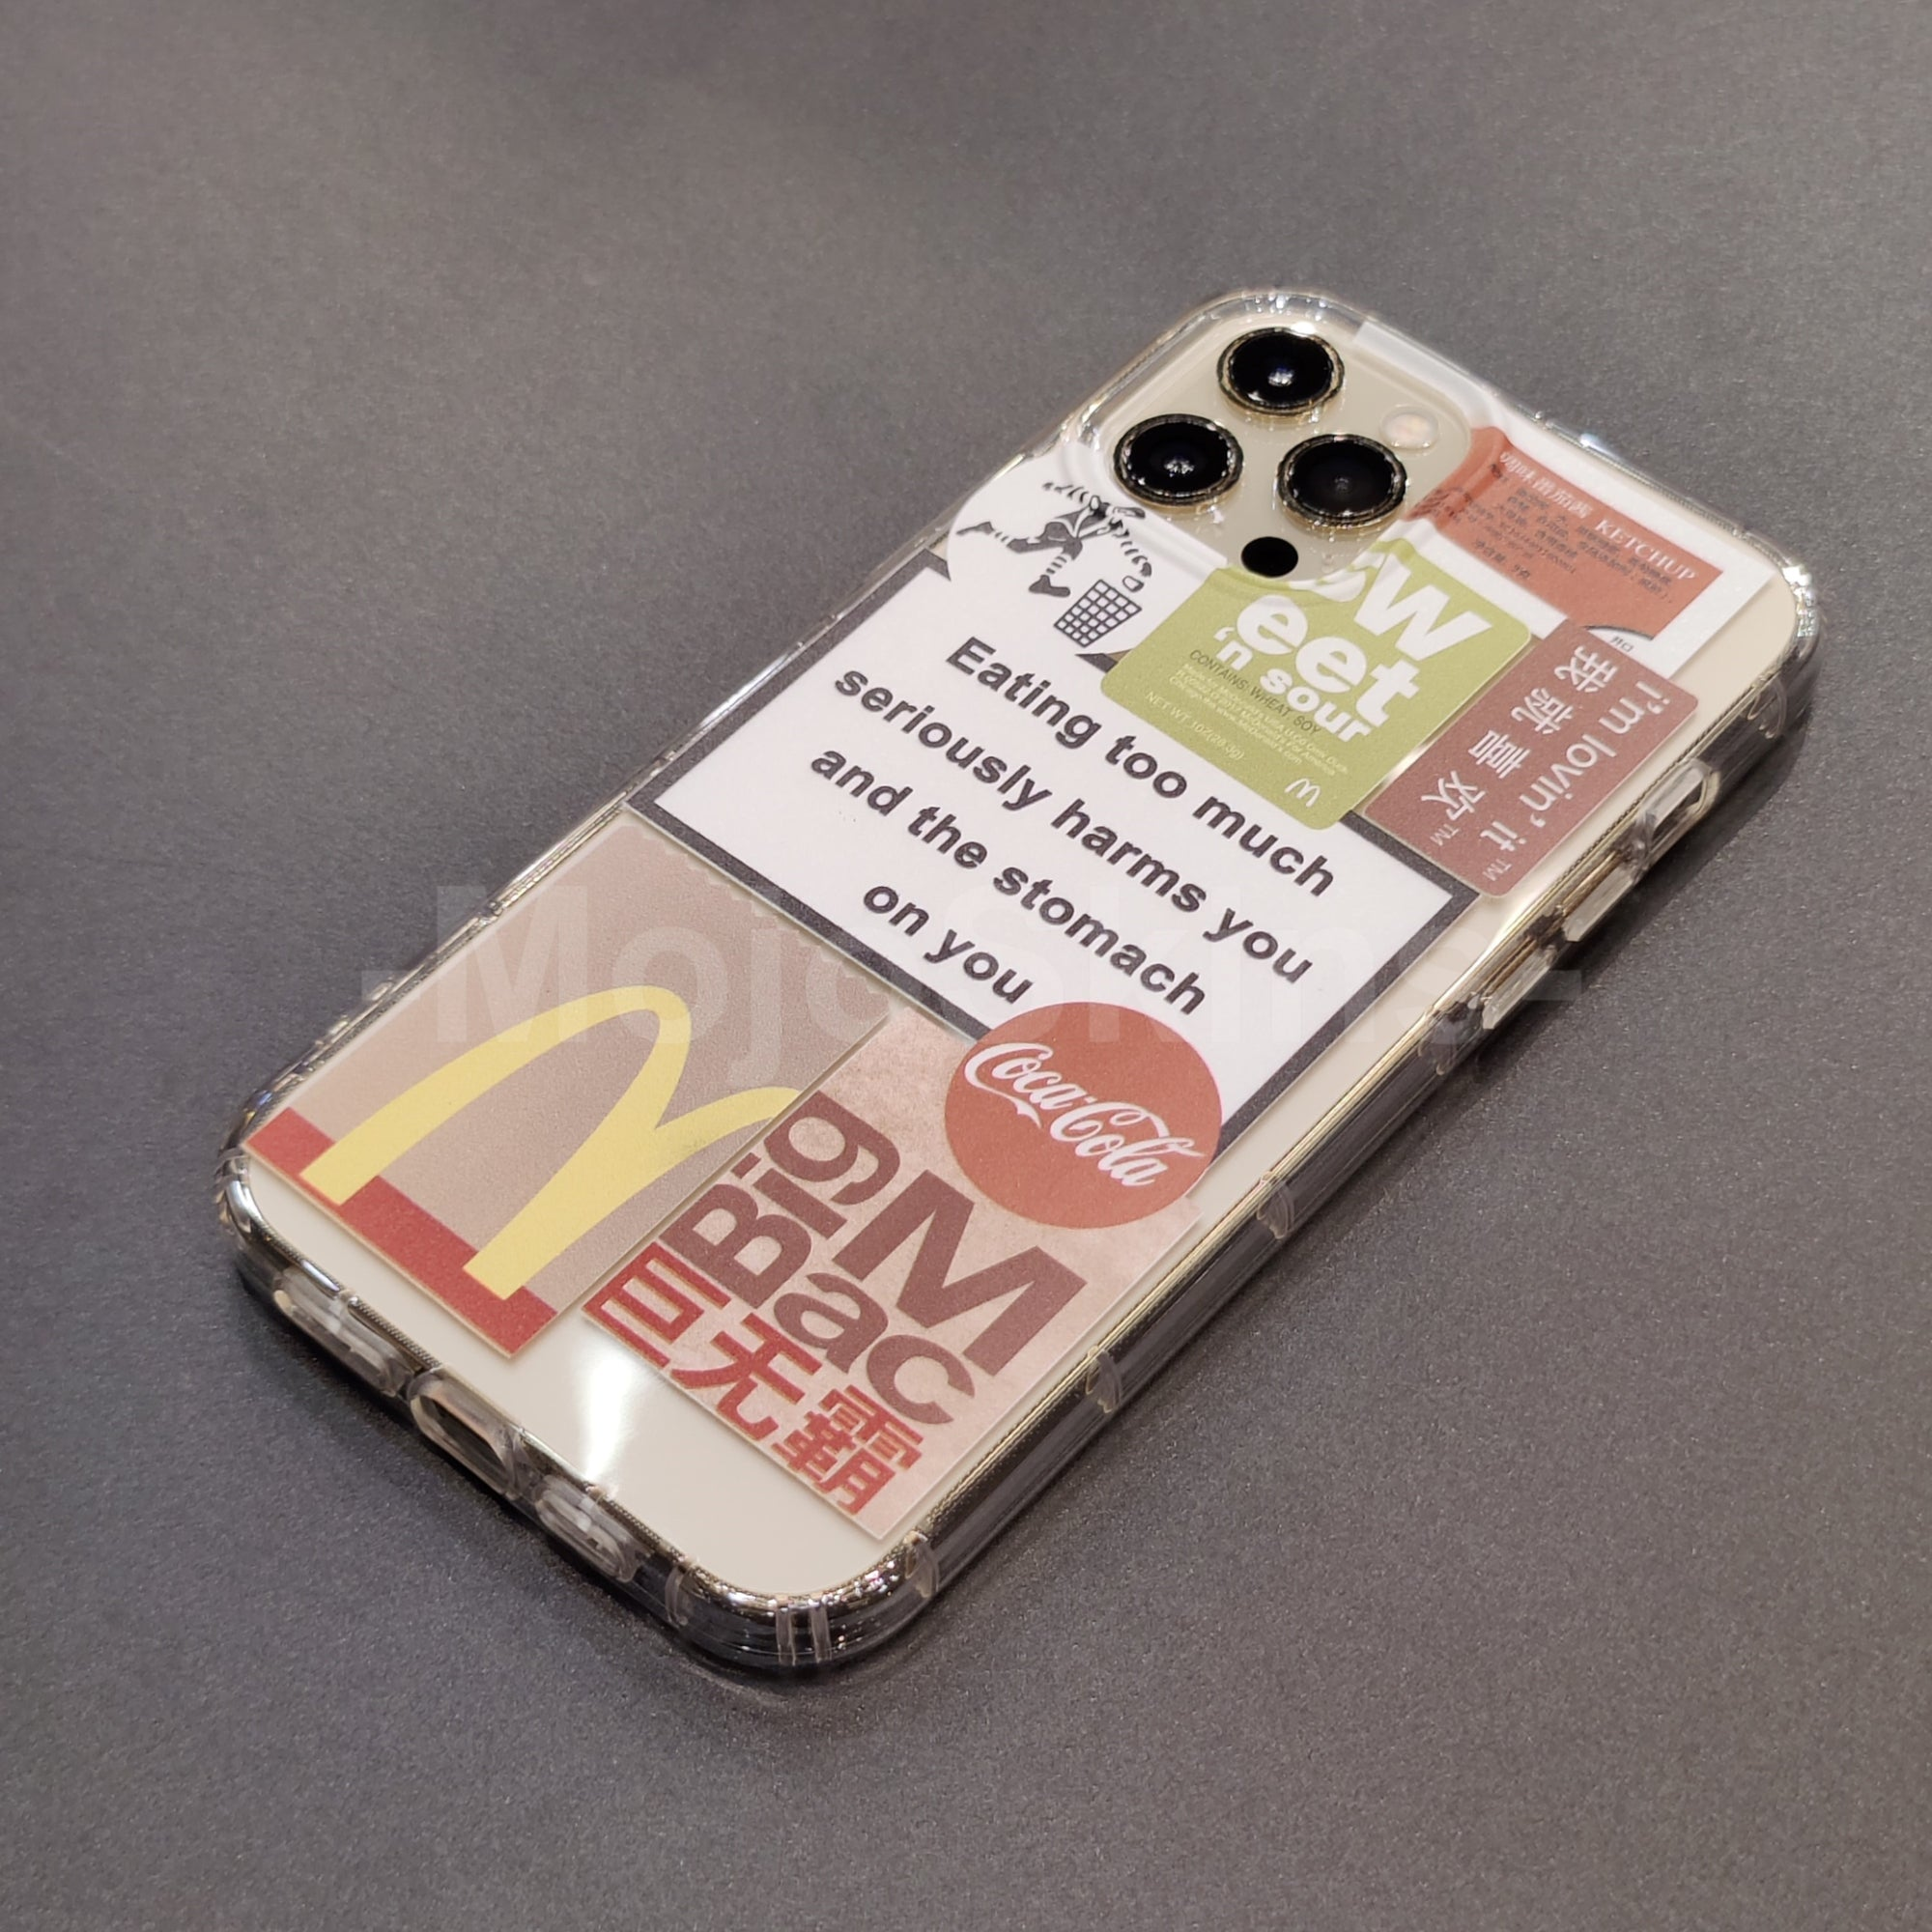 Big Mac Mcd Iphone Casing